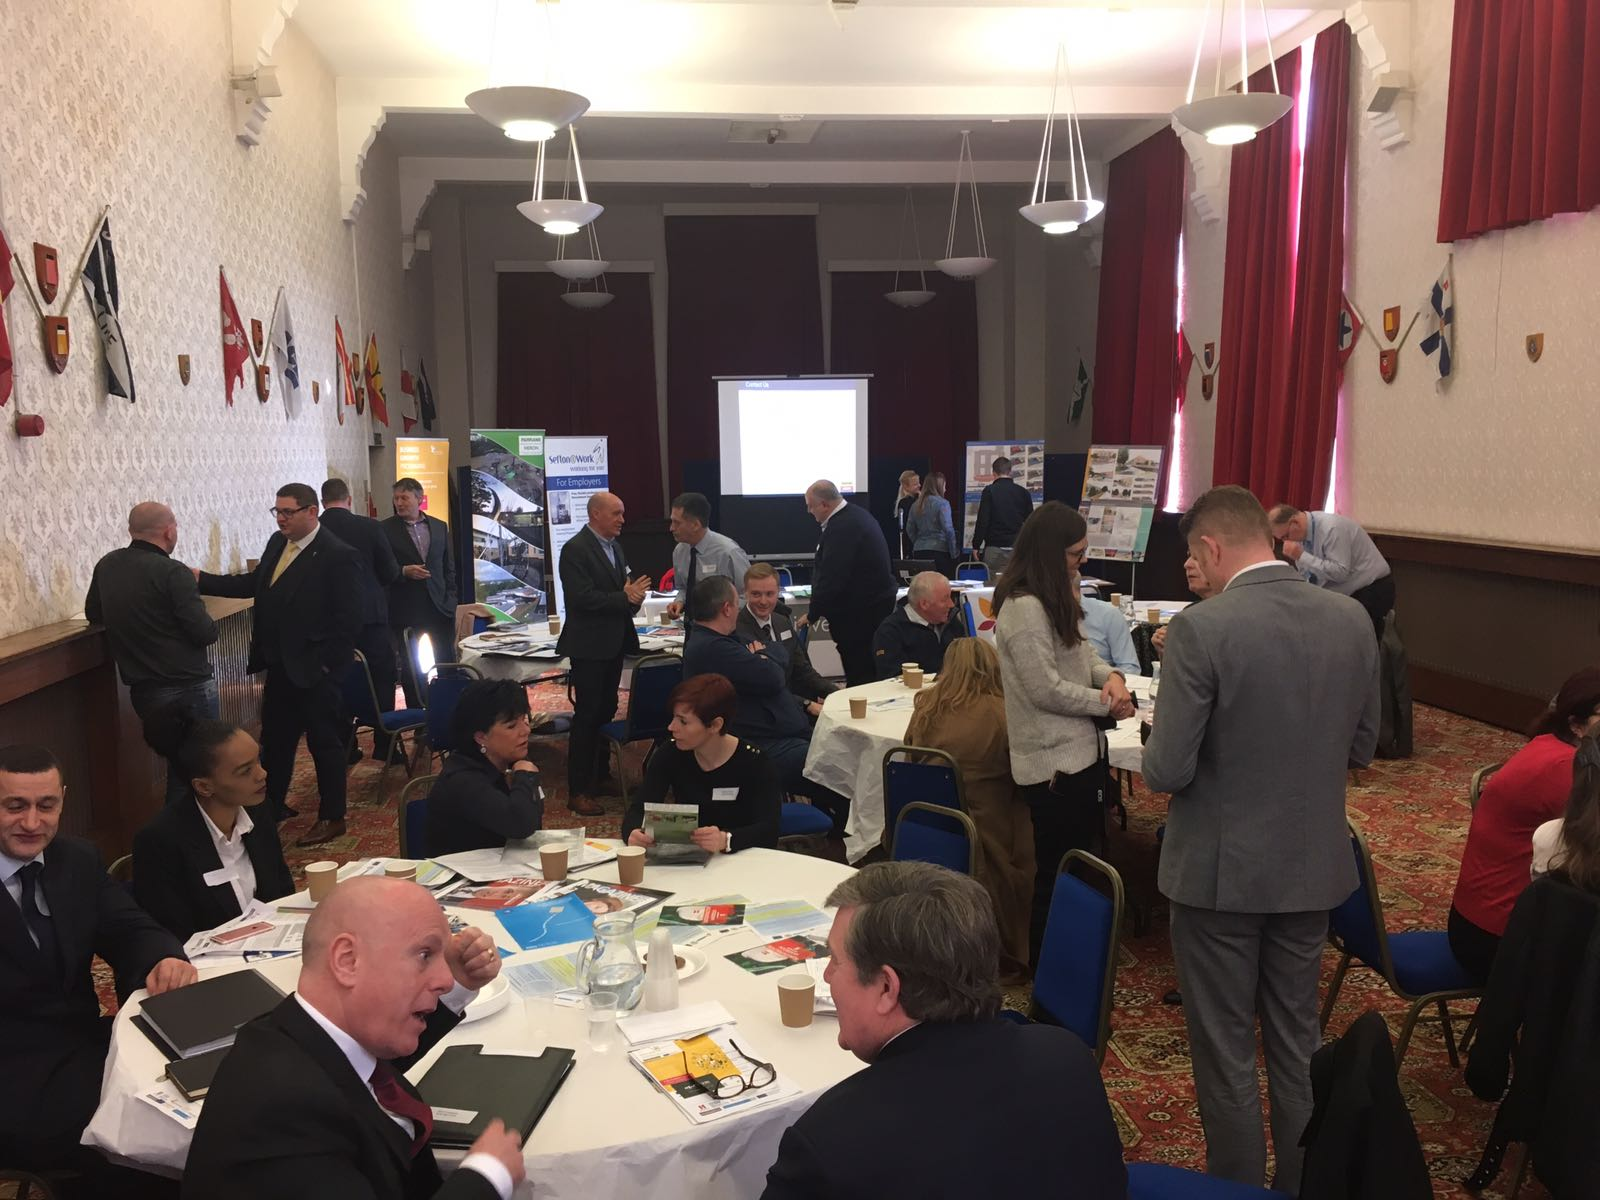 More than 50 delegates from businesses across Sefton attended a Â'Meet the BuyerÂ' event organised by InvestSeftonÂ's Business Growth Programme team.        The aim of the event was to give companies across the borough, particularly smaller contractors and suppliers, the chance to learn about a...